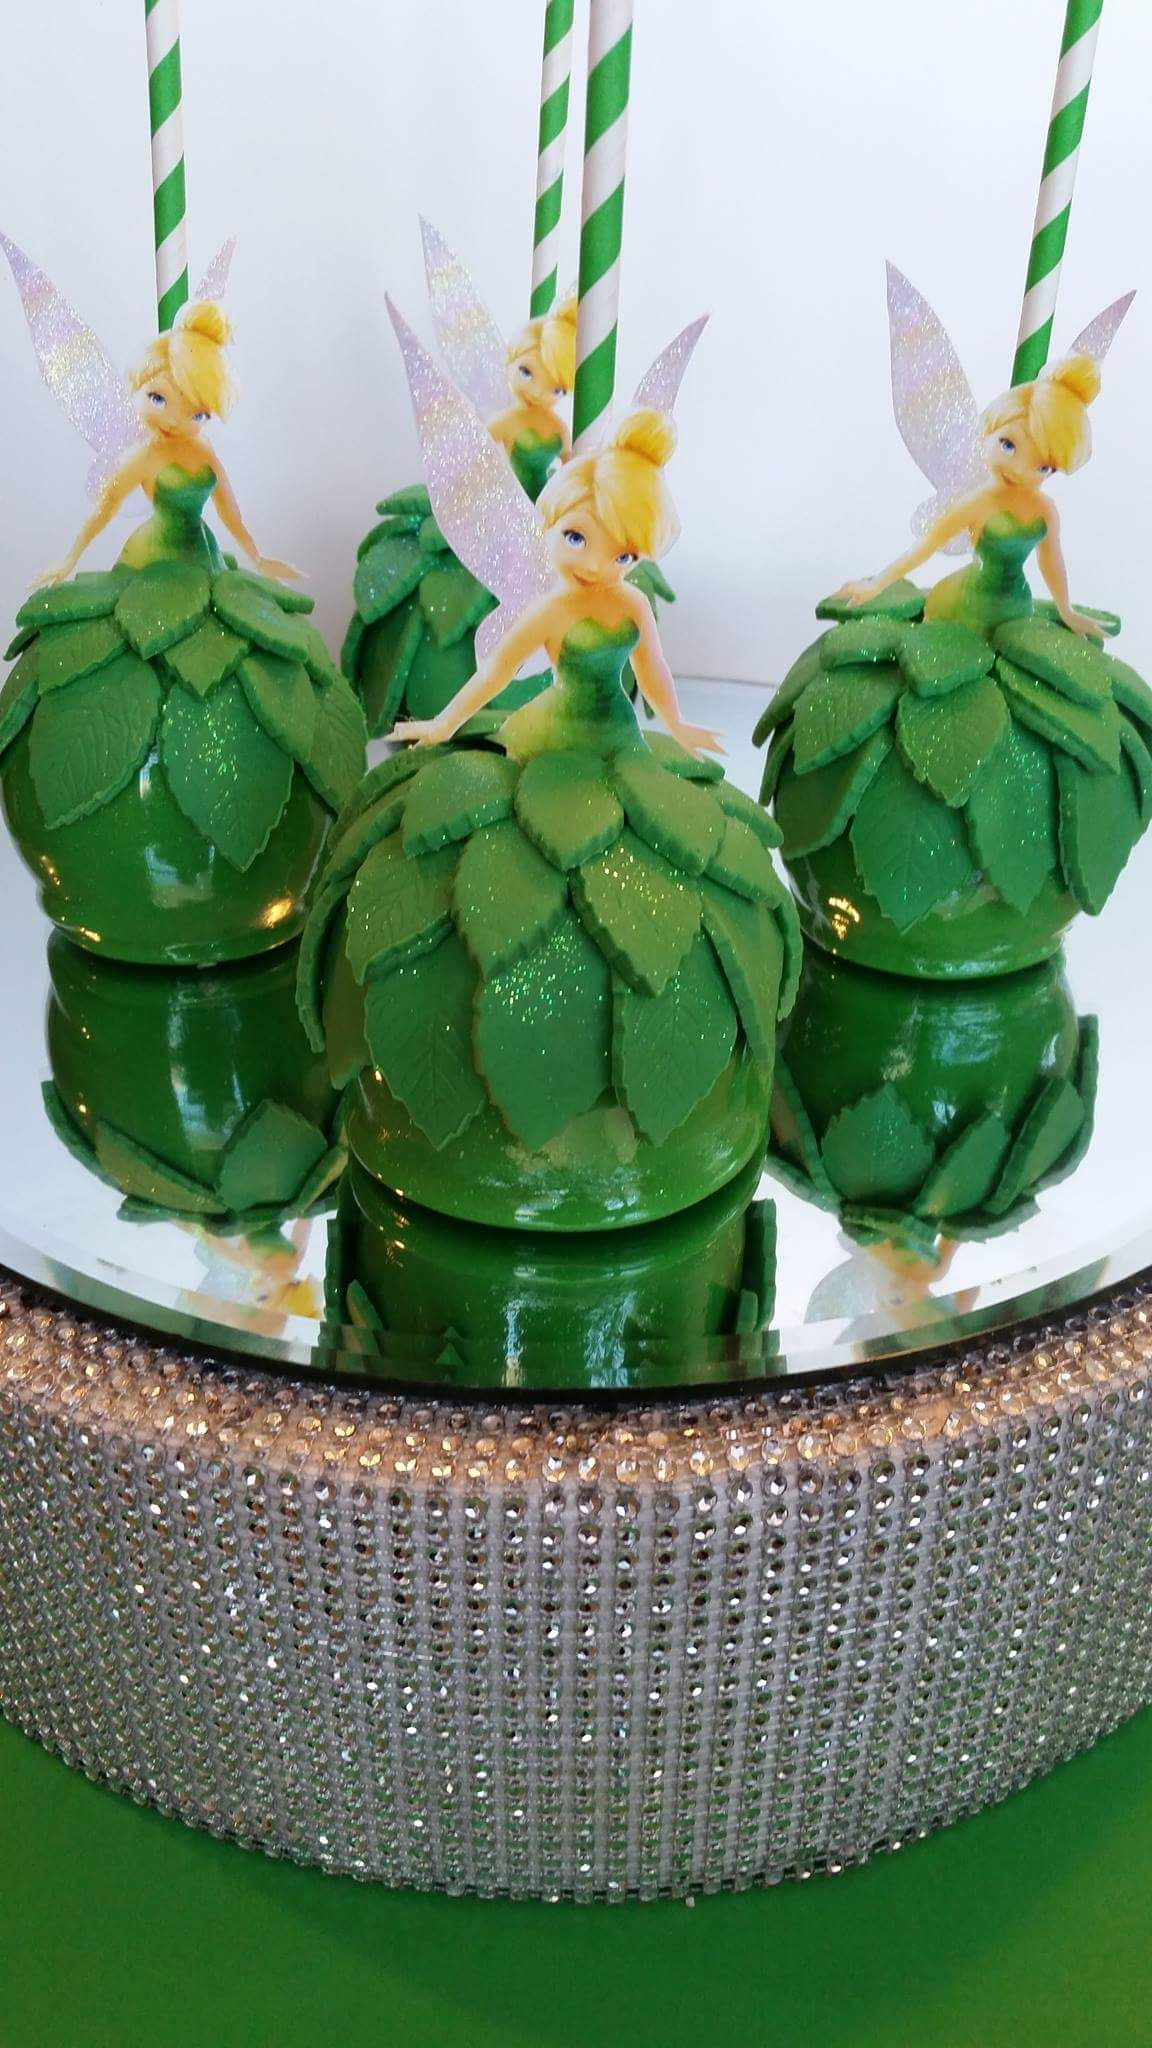 Tinkerbell Candy Apples Made By Pearland Sweet Tooth